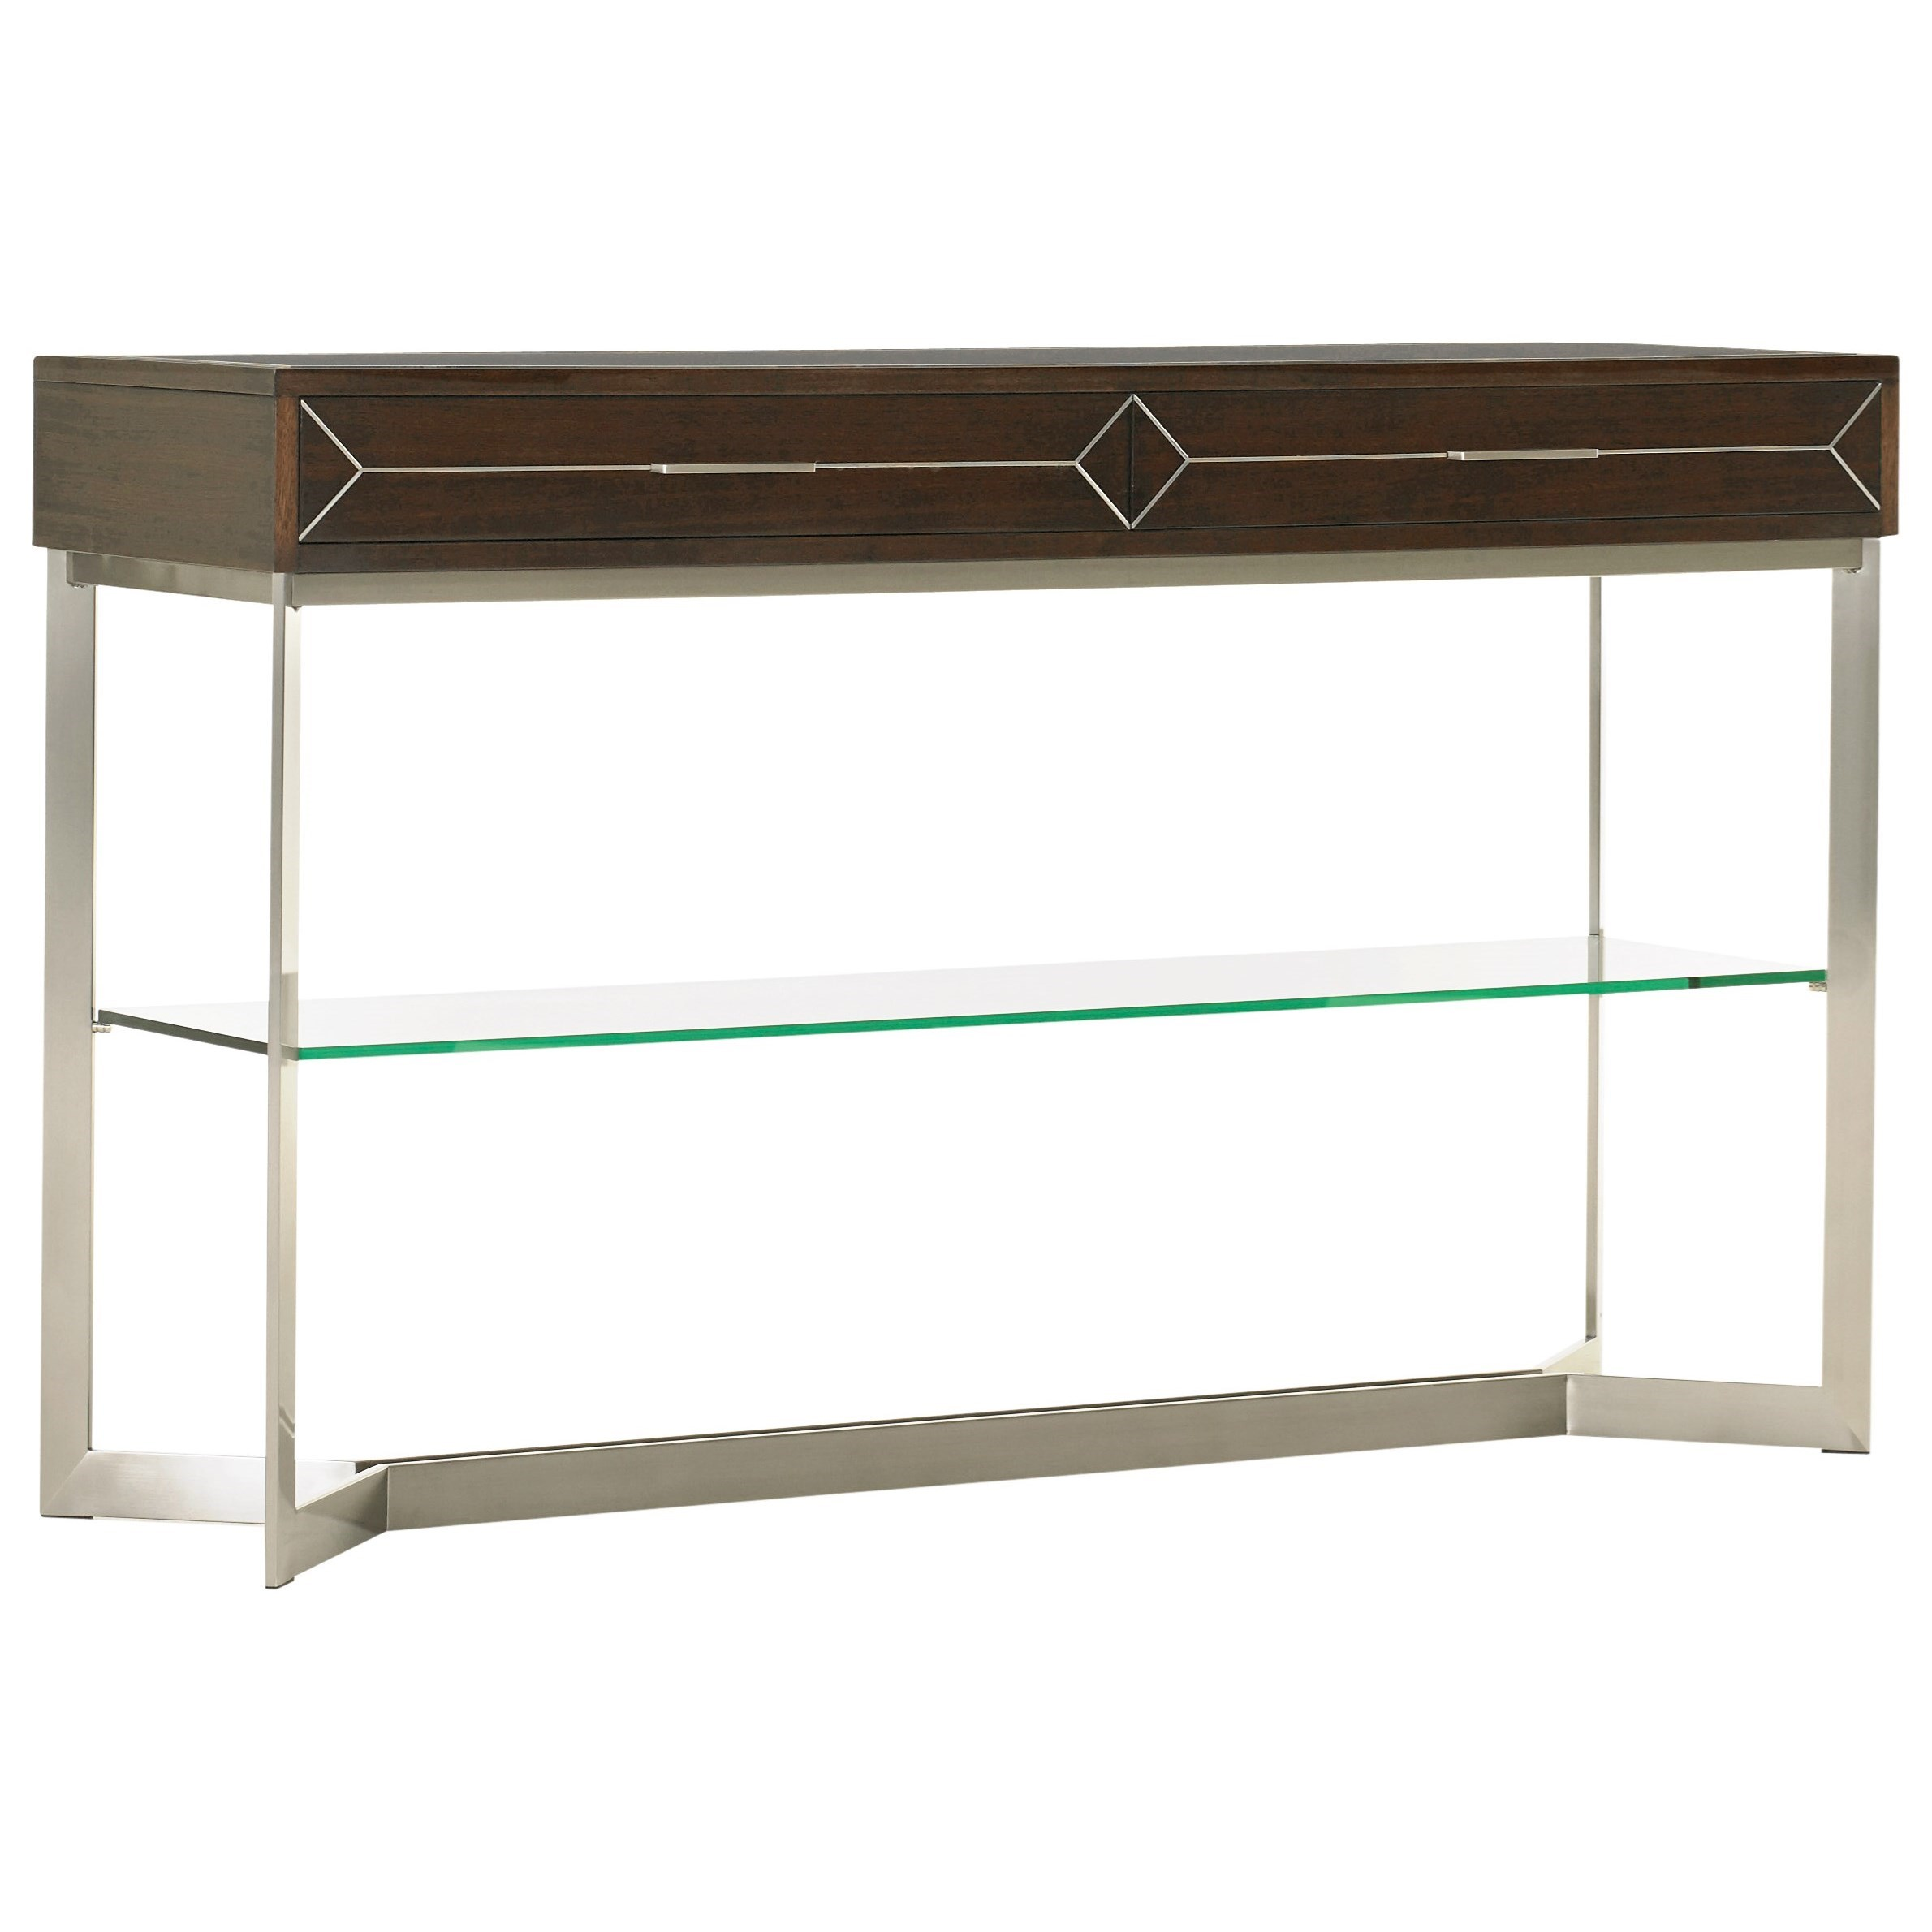 MacArthur Park Loring Console Table by Lexington at Baer's Furniture